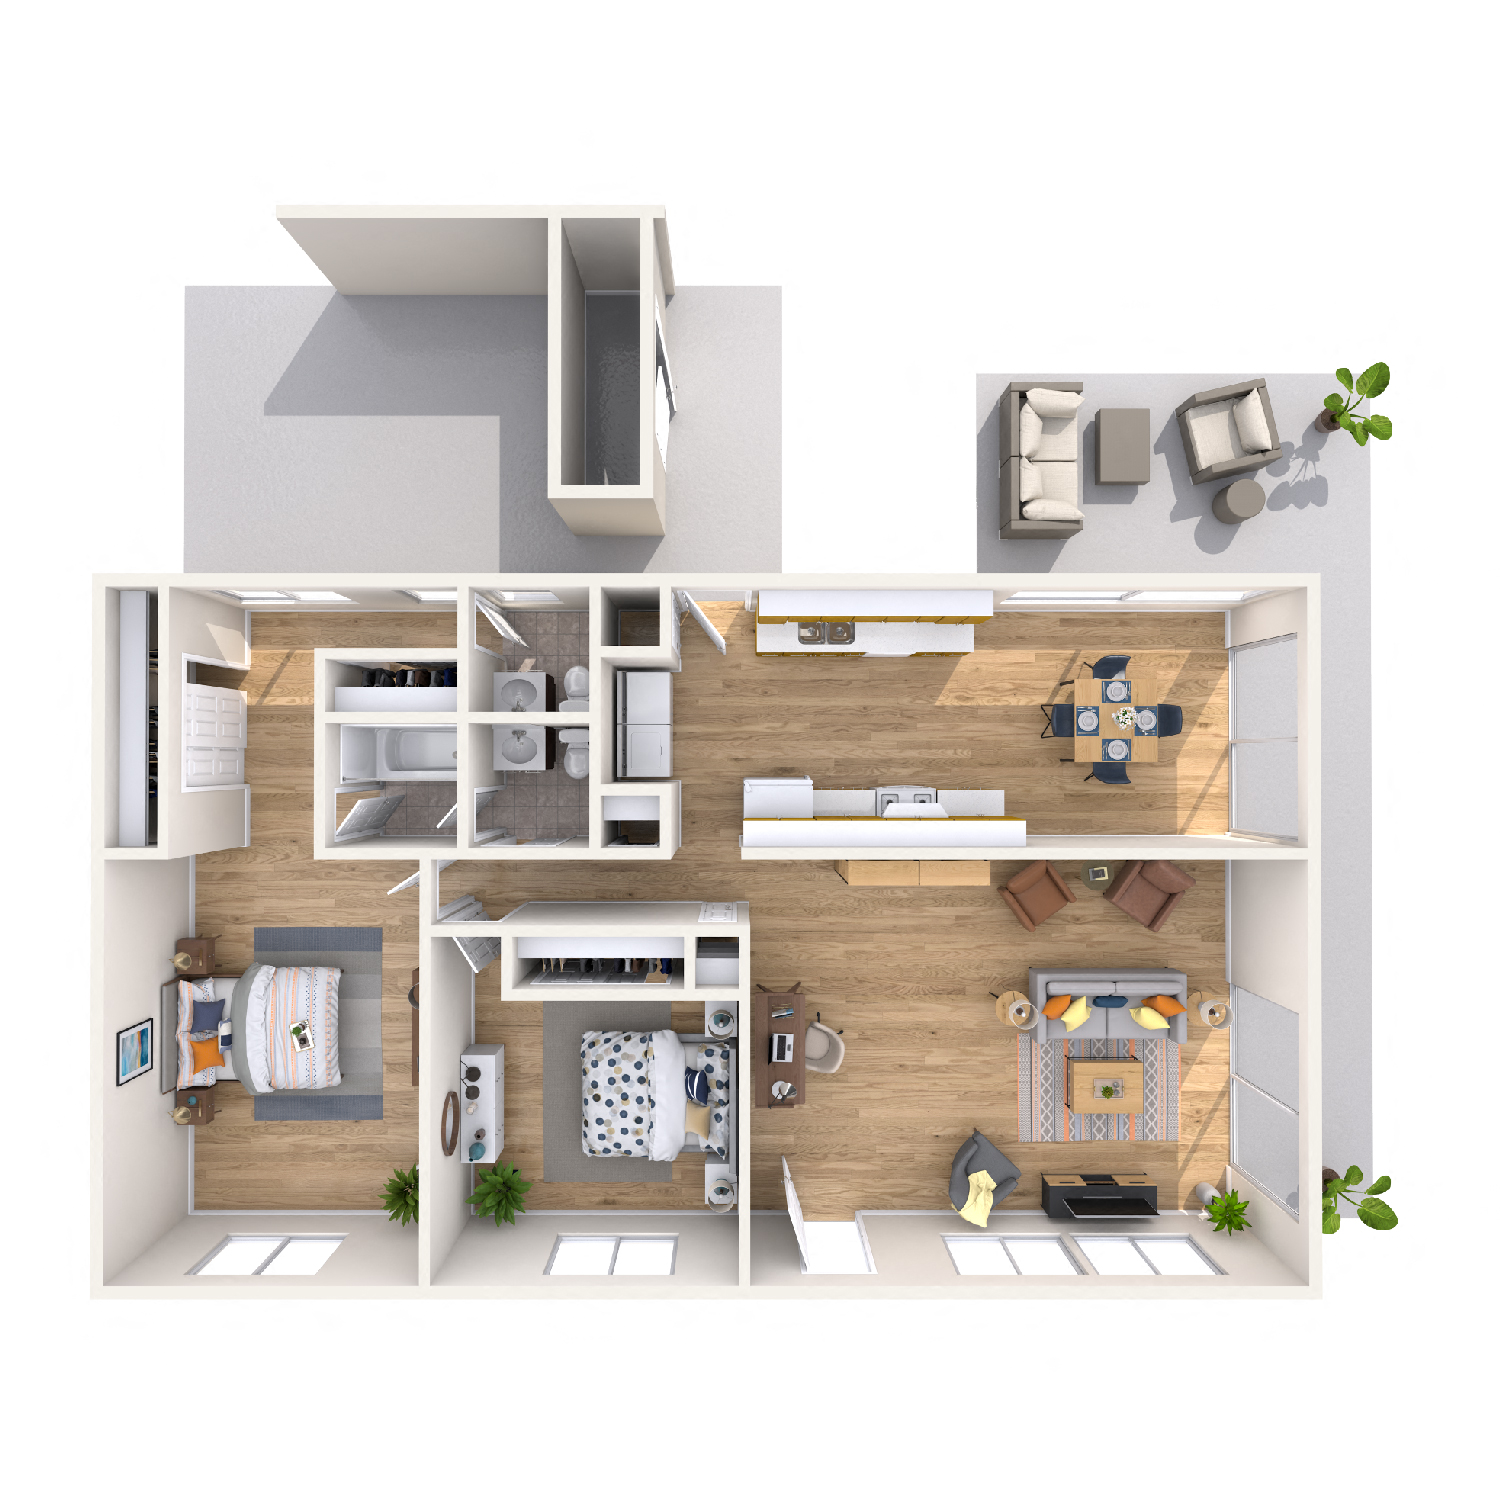 Hibiscus diagram - 2 bed 1.5 bath kapolei apt floorplan